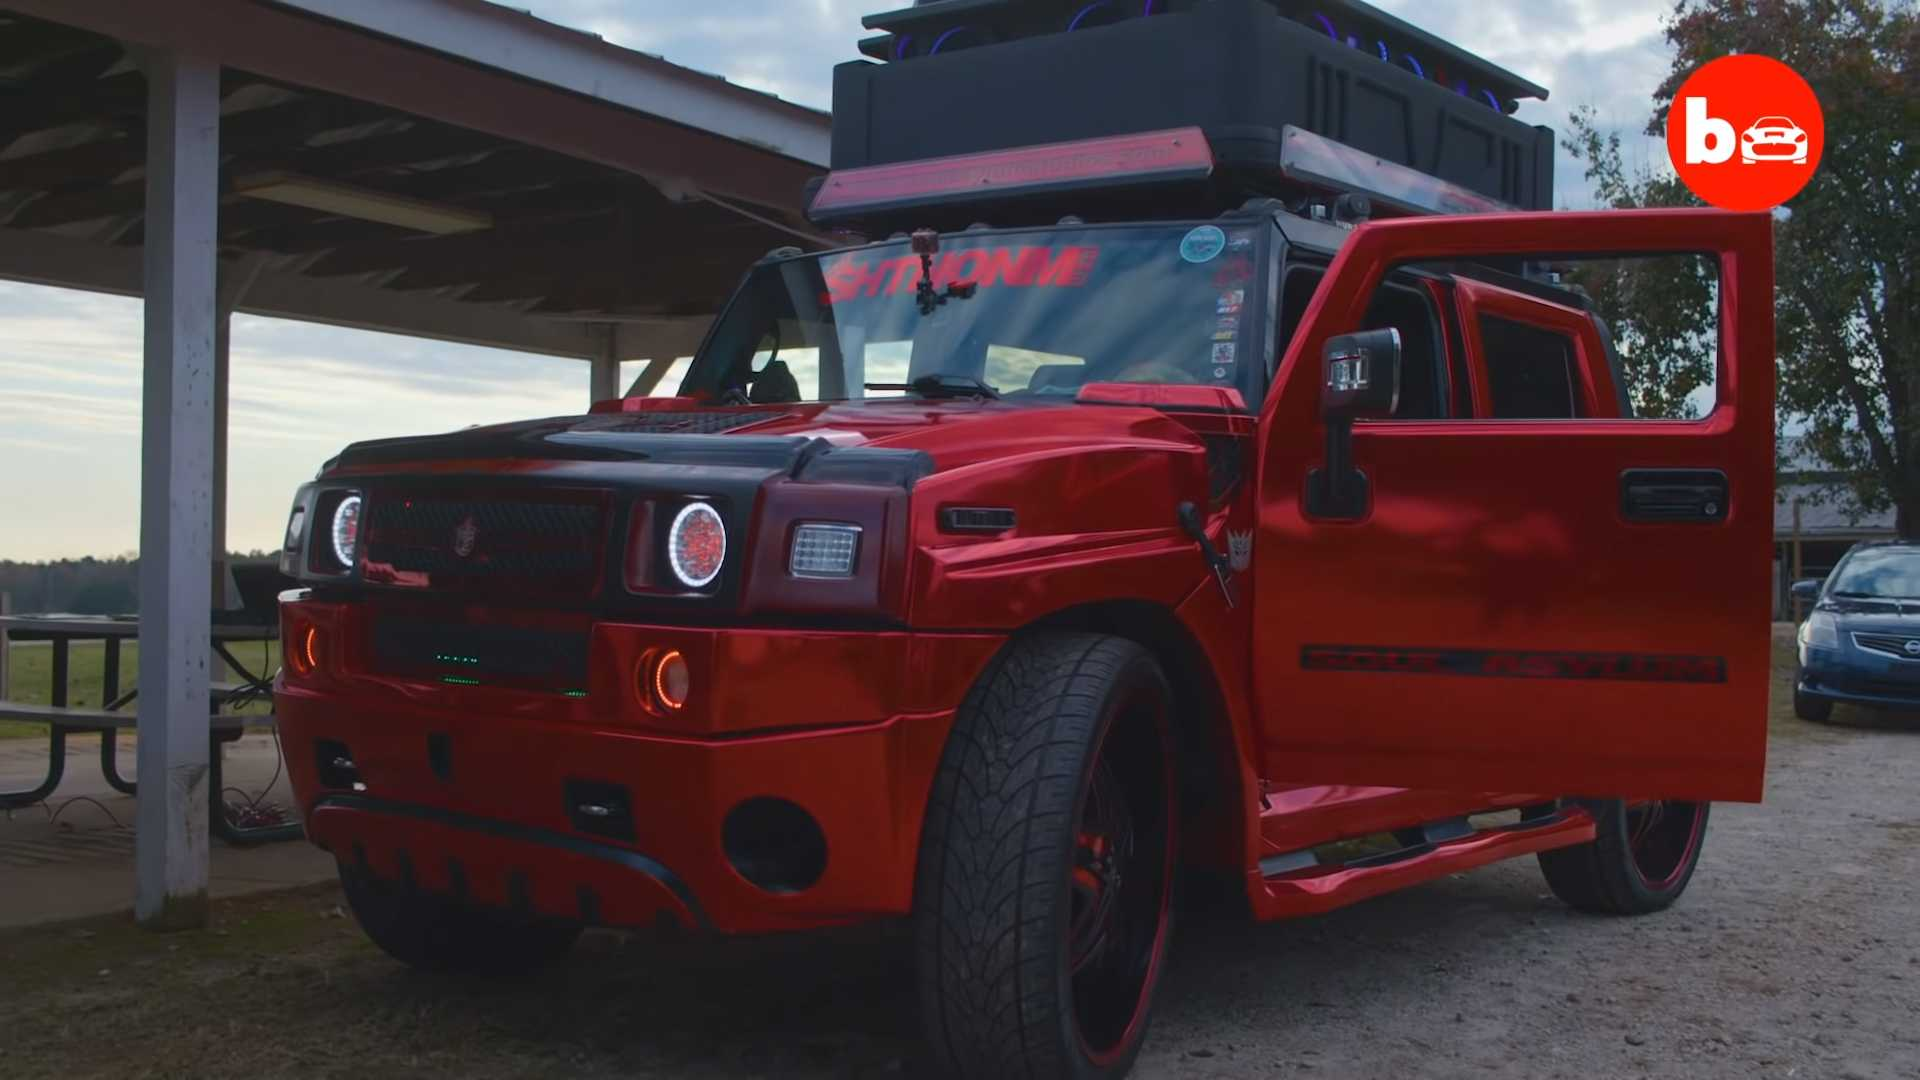 Crazy Hummer H2 Has 86 Speakers, Can Be Heard Almost 5 km Away